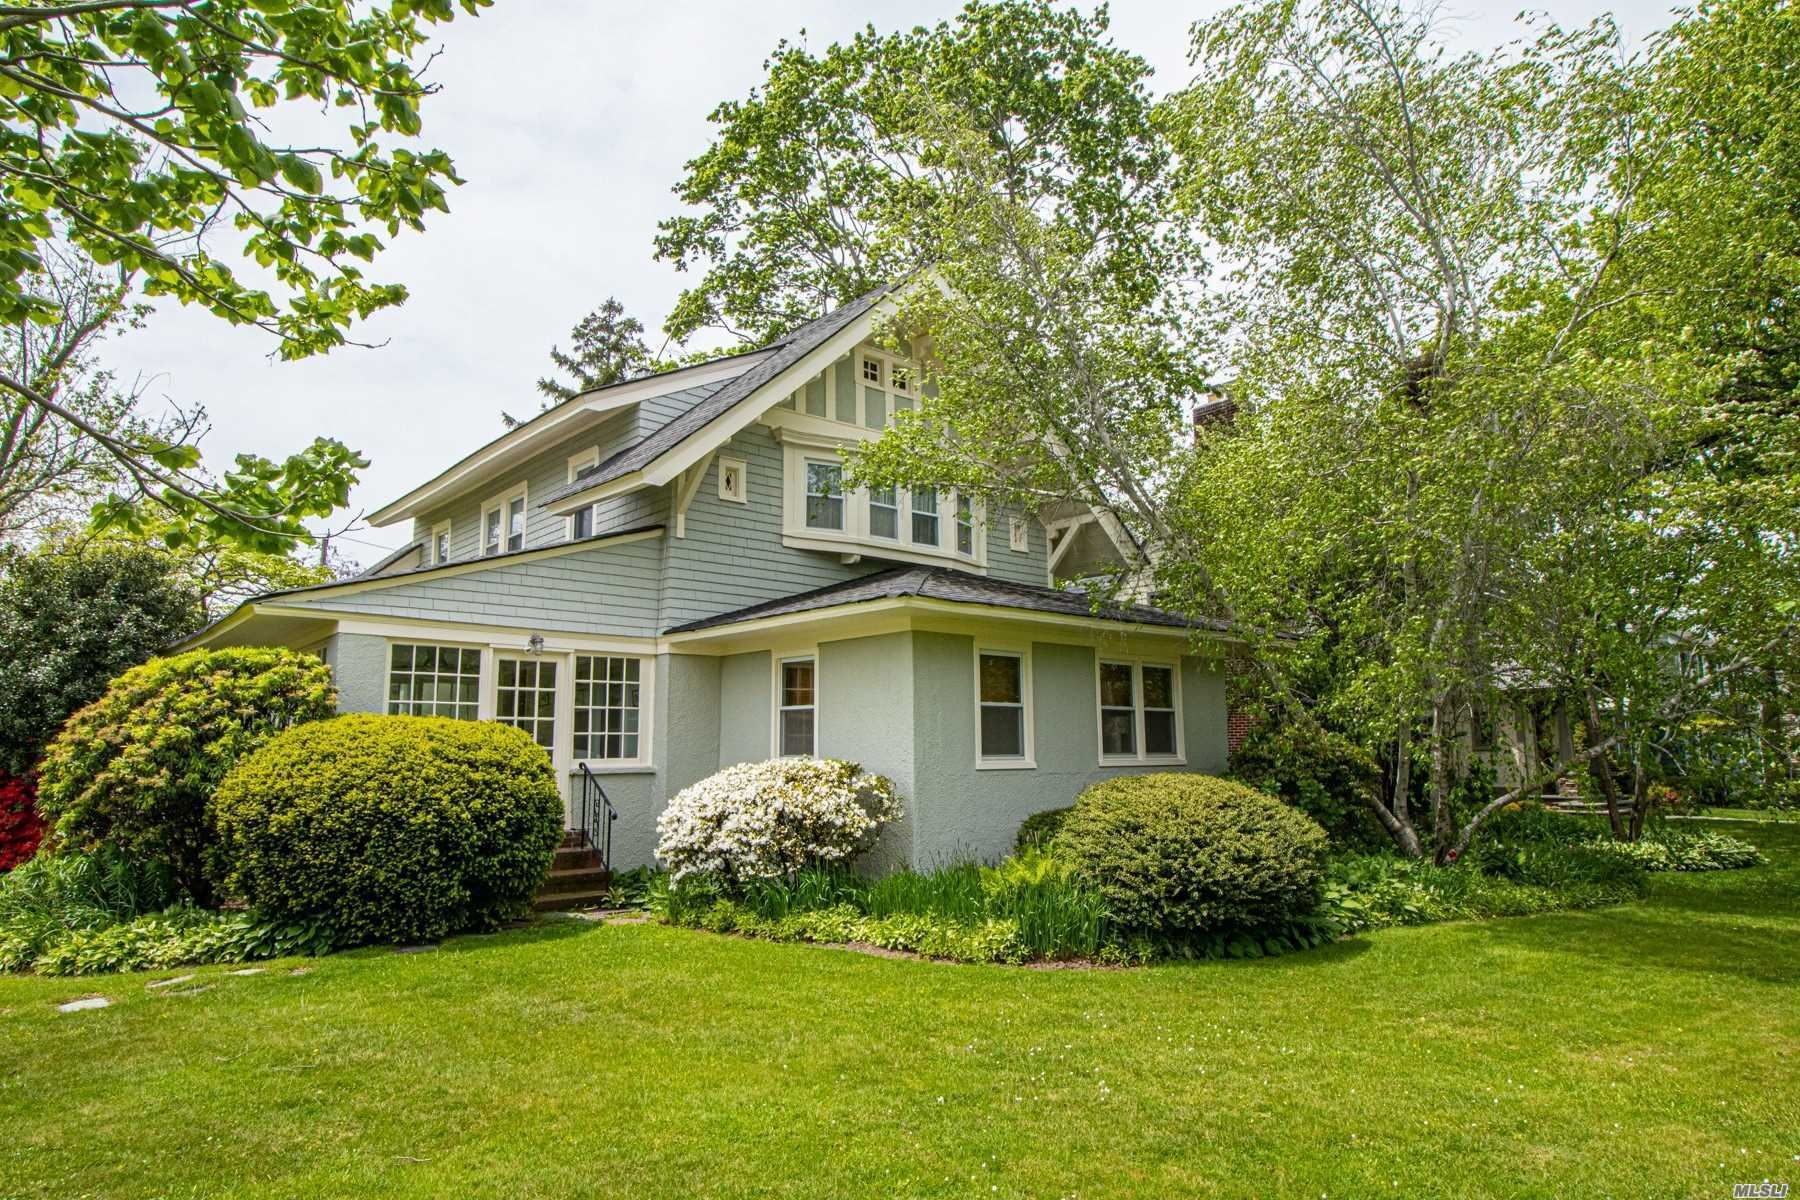 299 Windsor Ave, Brightwaters, NY 11718 - MLS#: 3217781